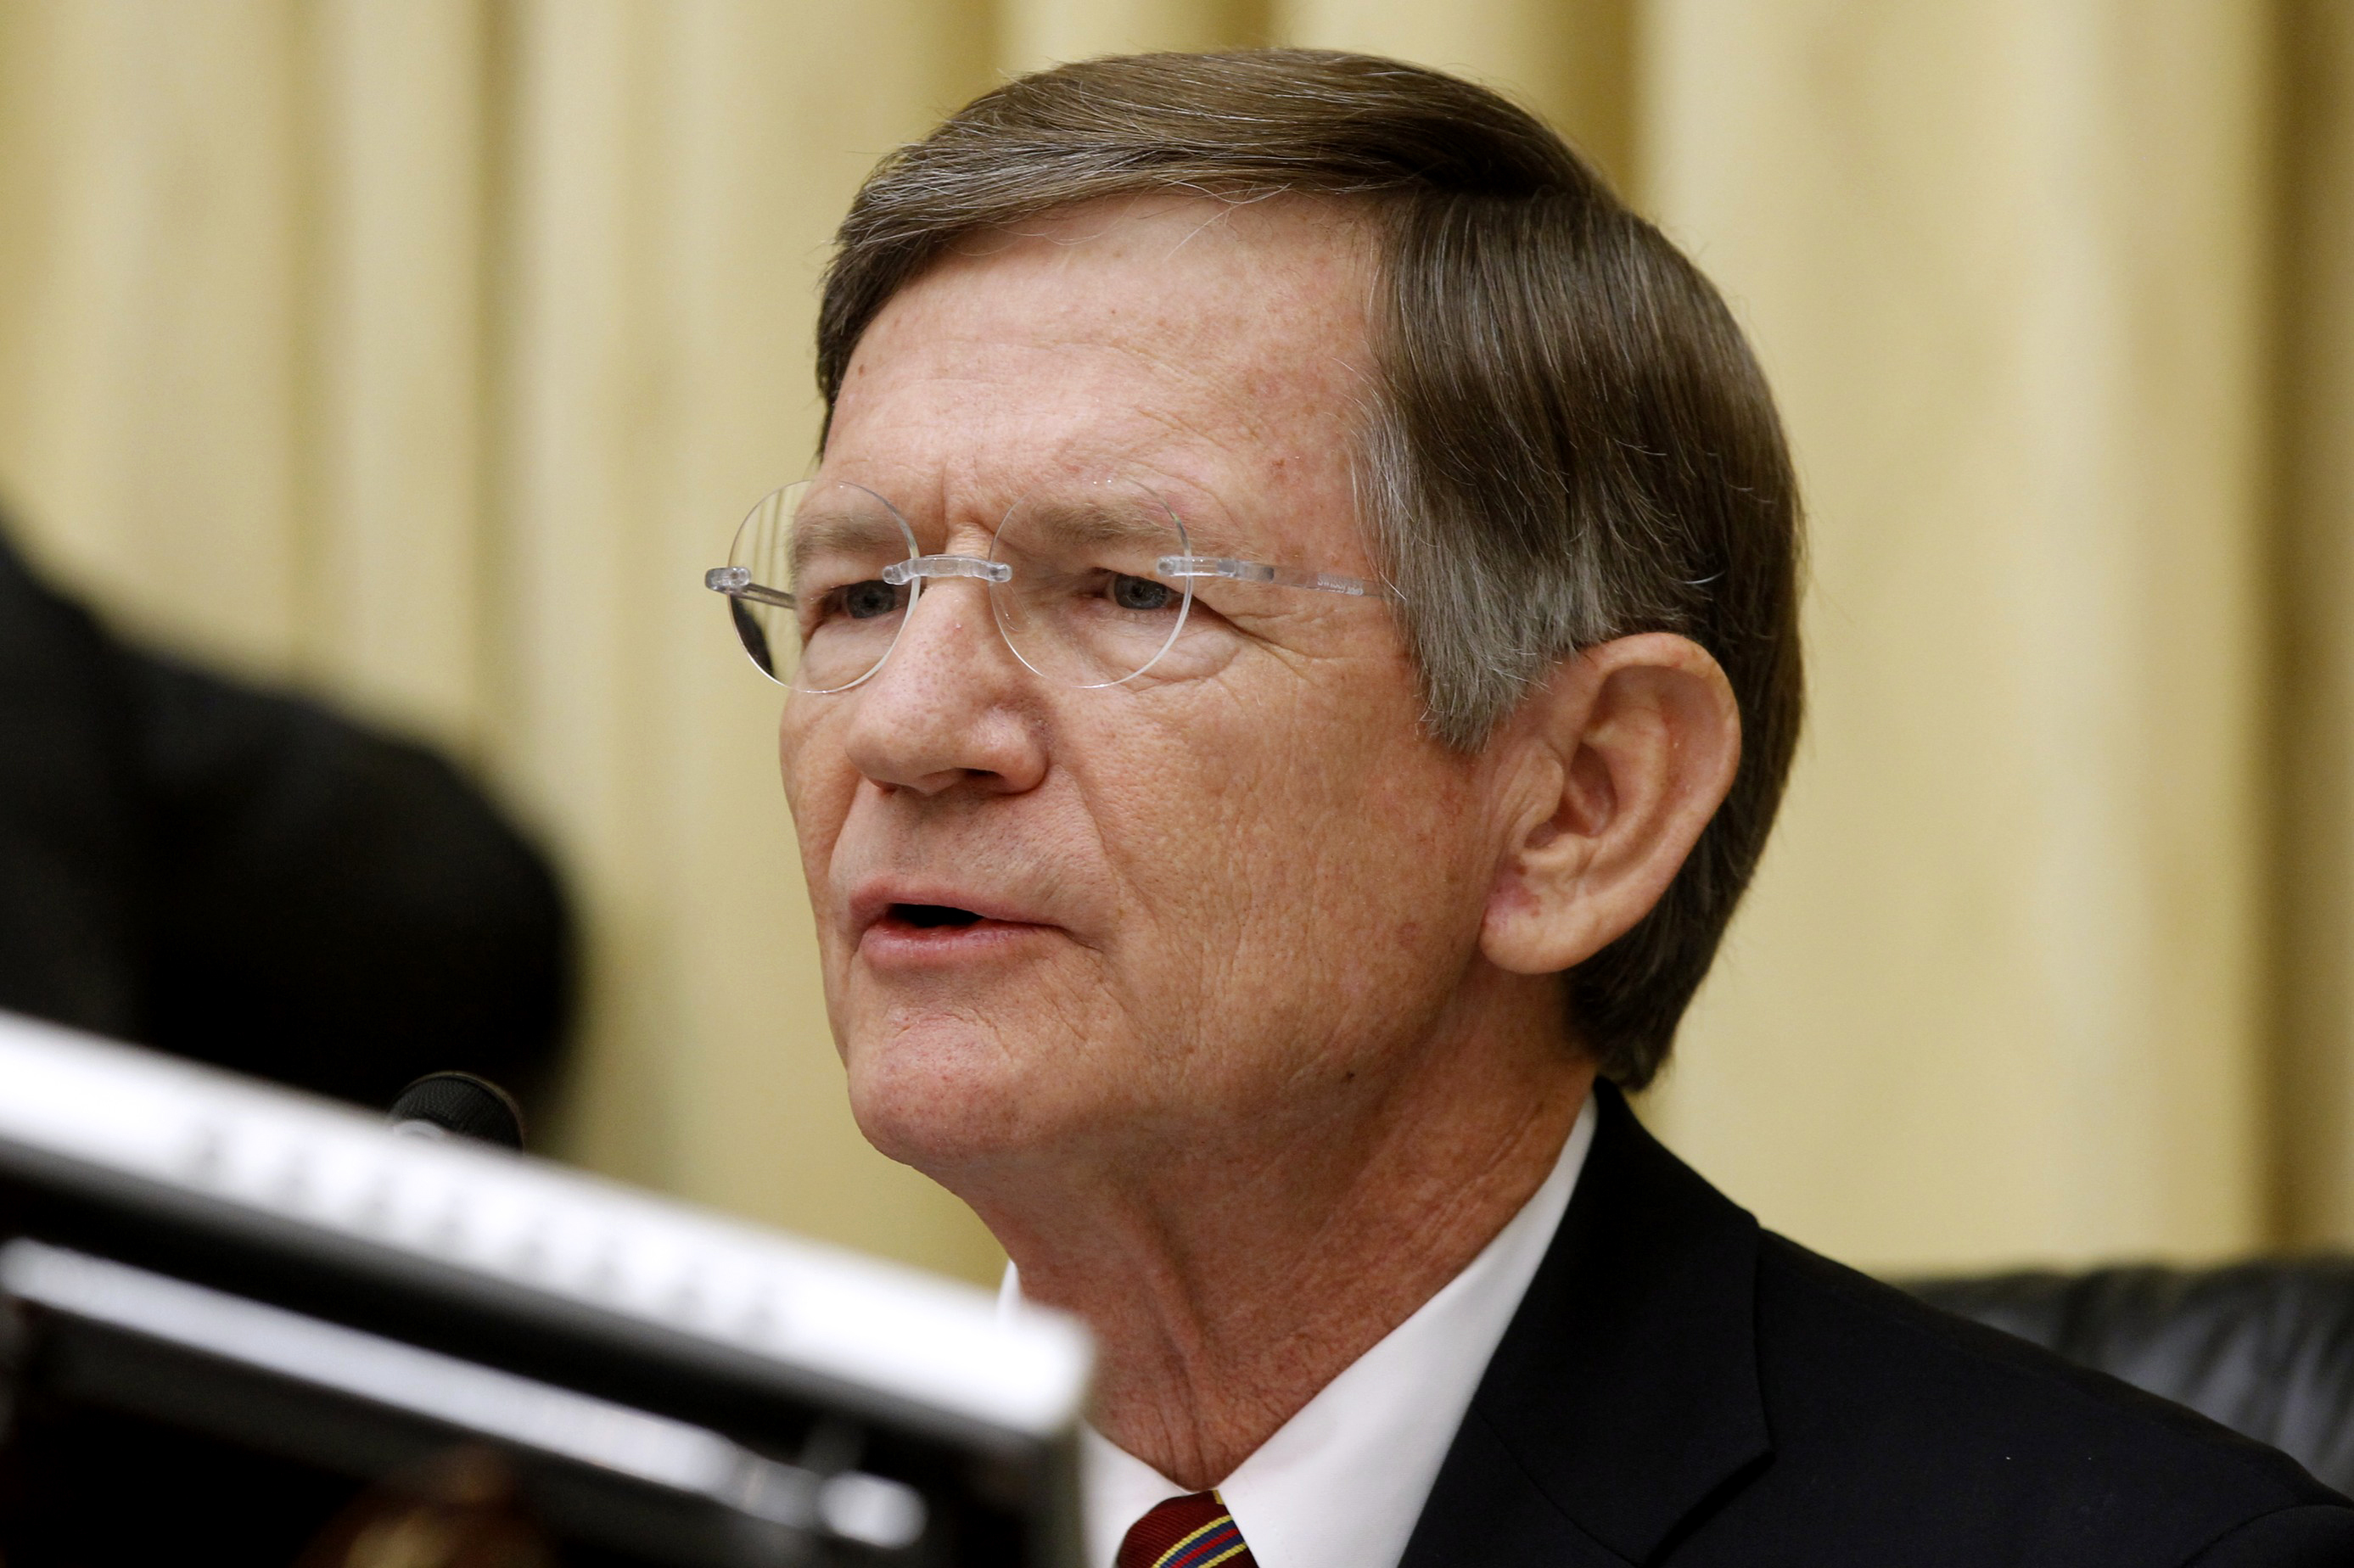 AG's office: House committee doesn't have power to subpoena us